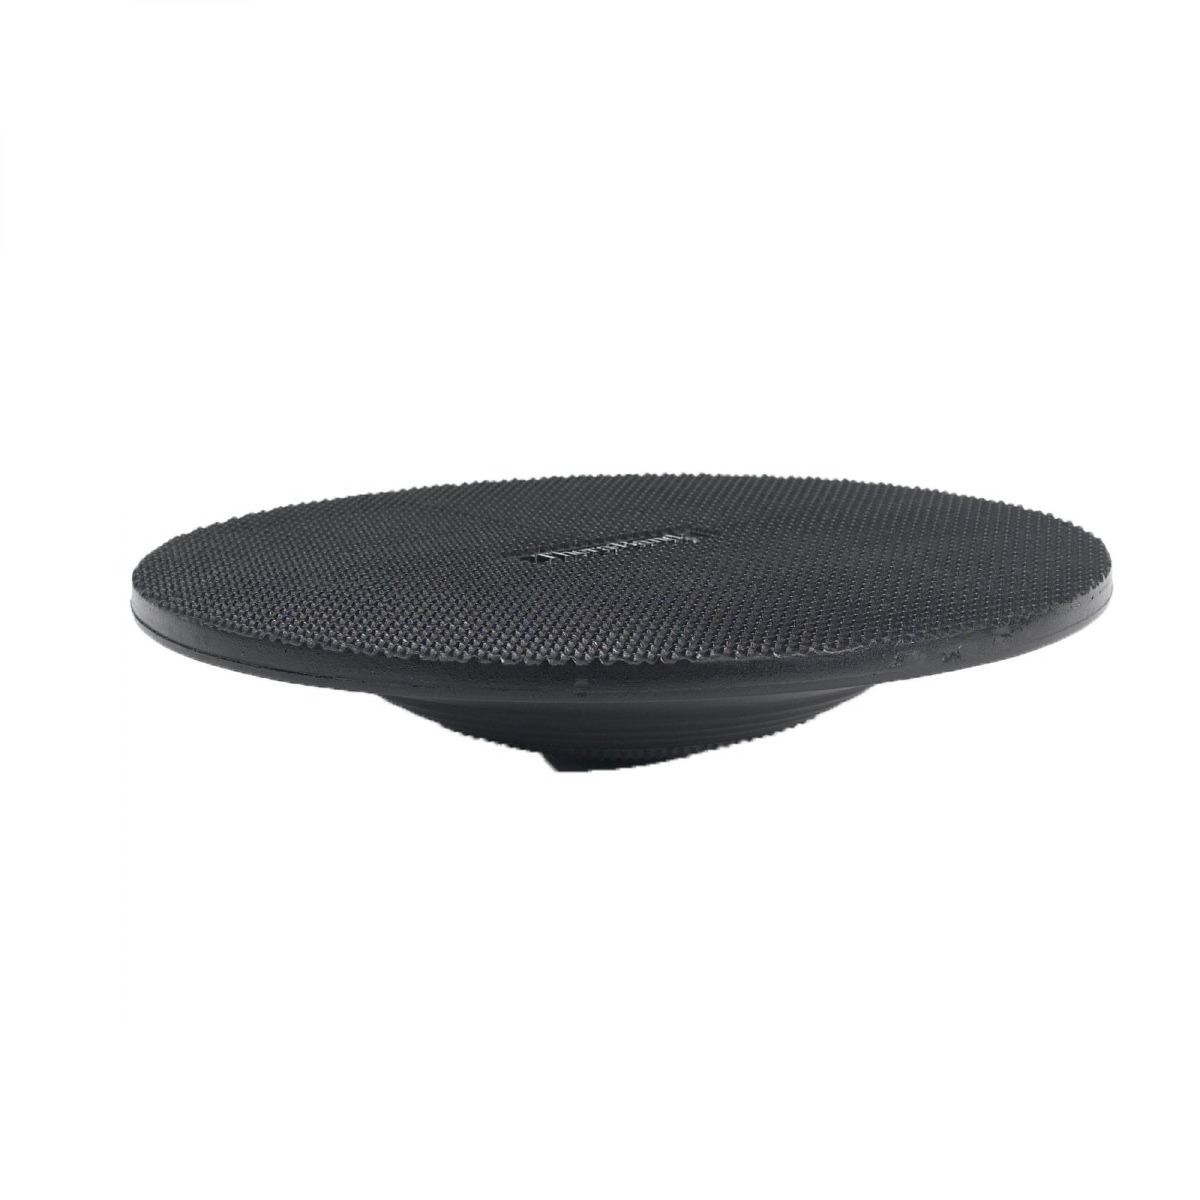 TheraBand Wobble Board